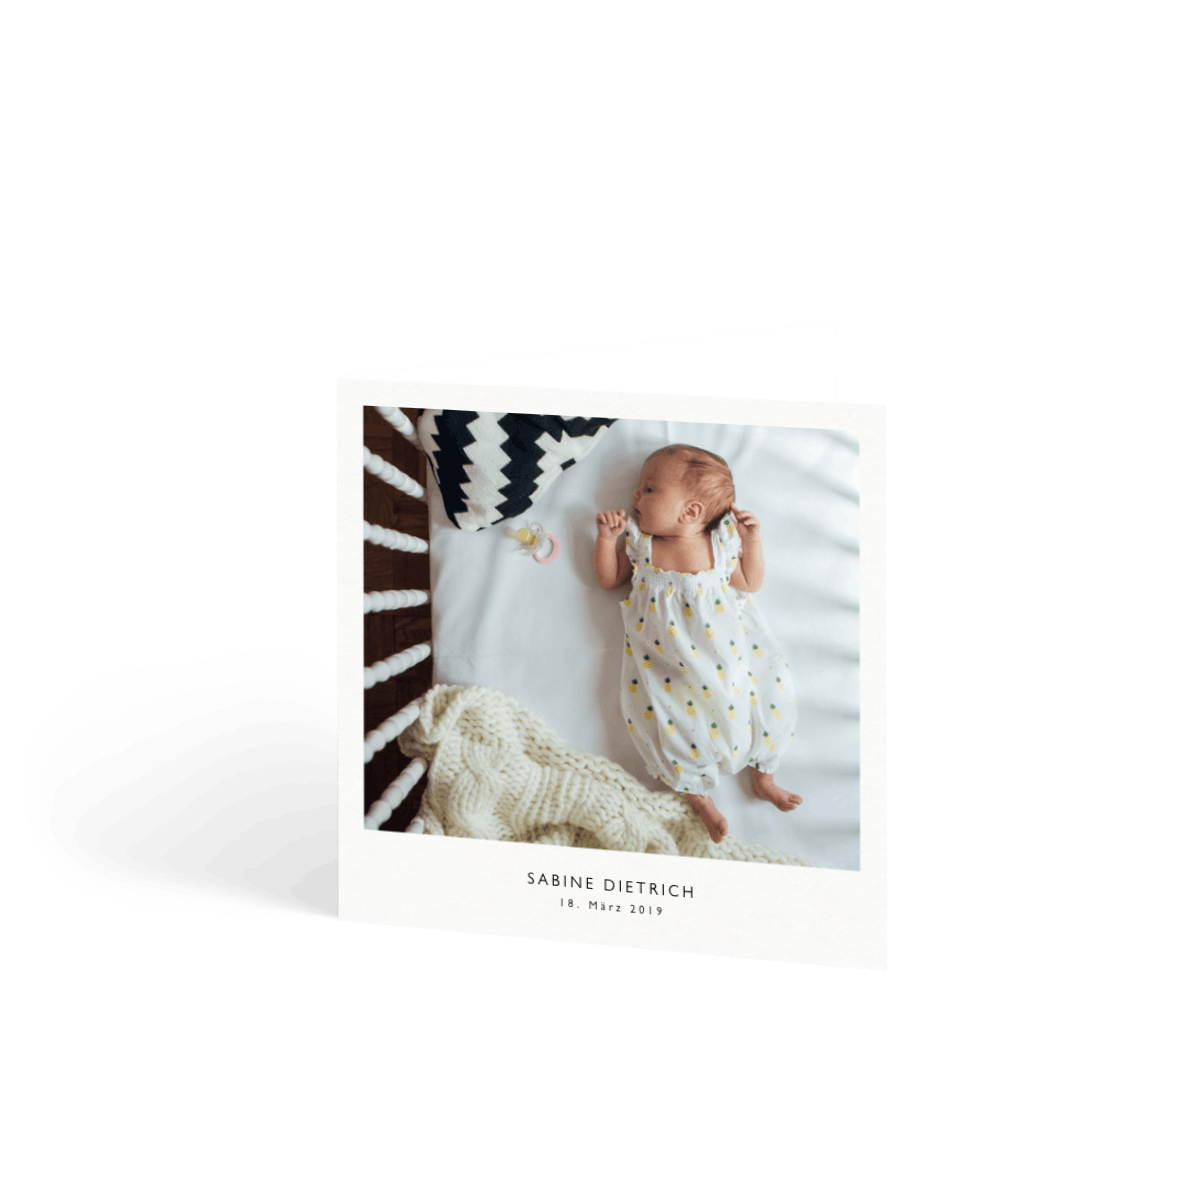 Https%3a%2f%2fwww.papier.com%2fproduct image%2f79002%2f16%2fbaby photo frame 16757 vorderseite 1565271966.png?ixlib=rb 1.1